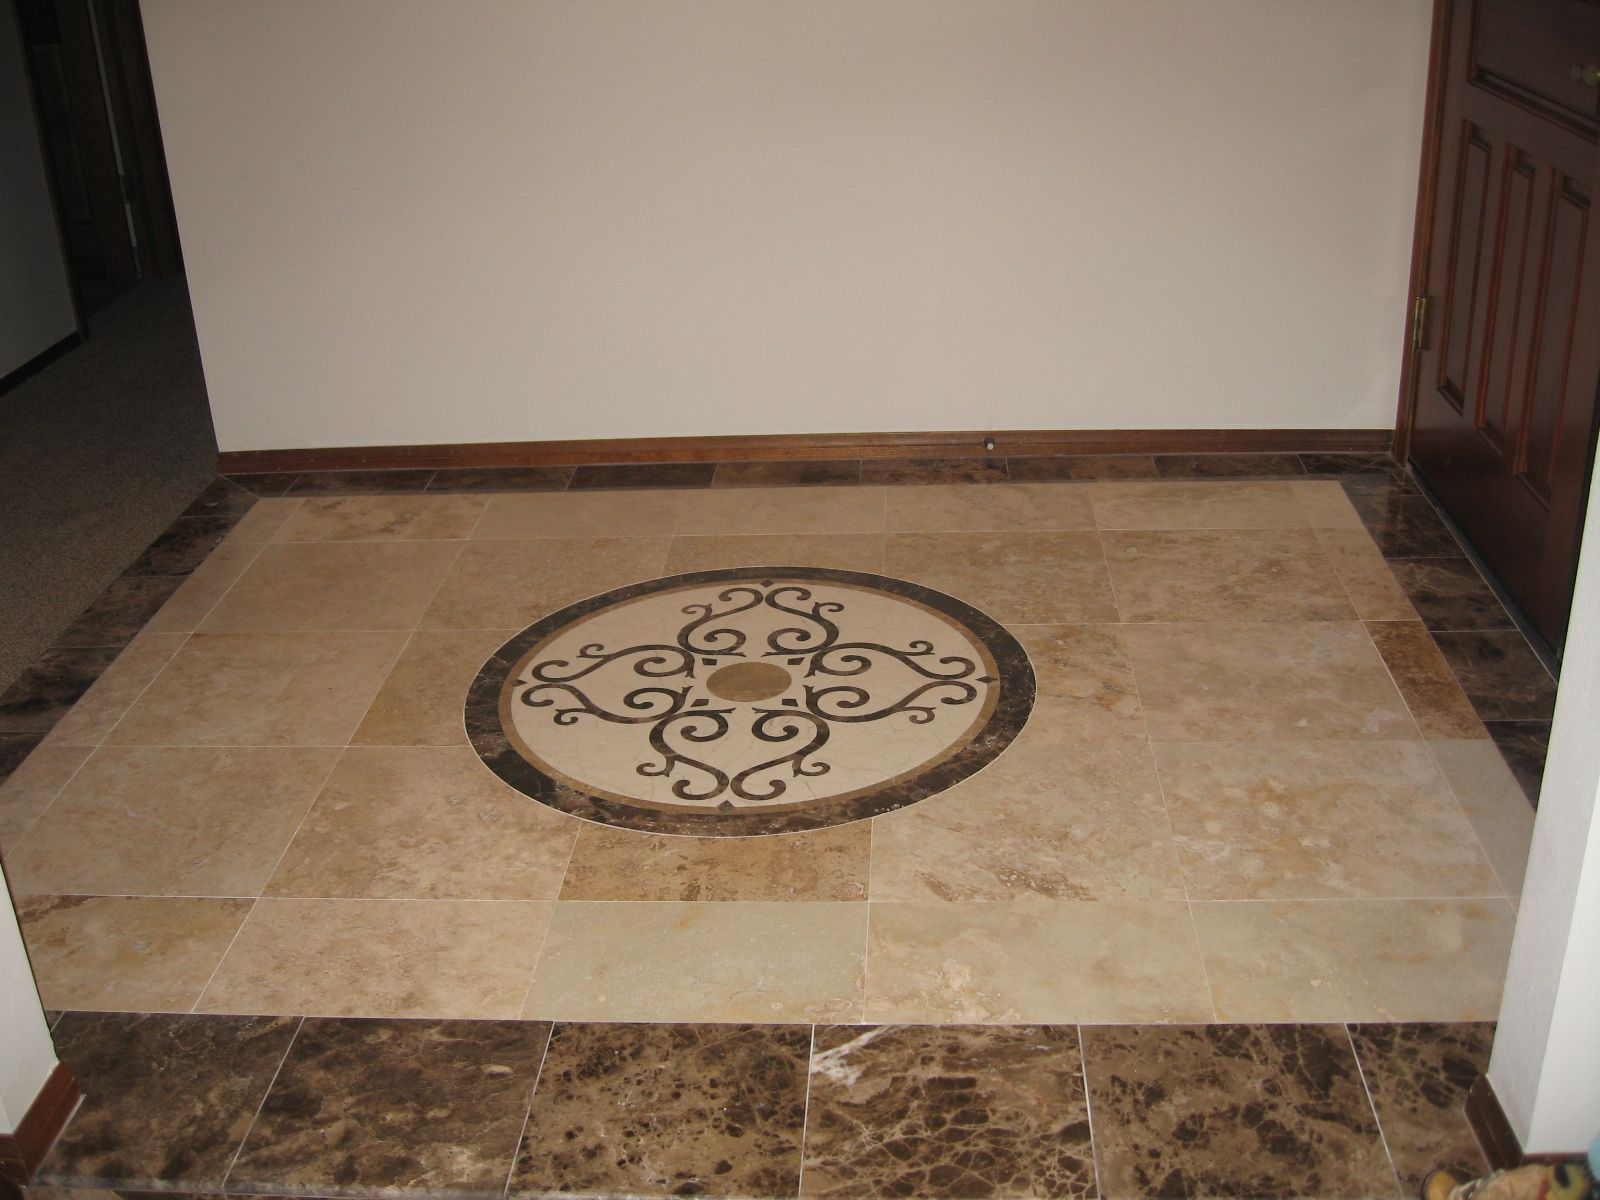 1000+ images about tile floor designs on Pinterest - ^